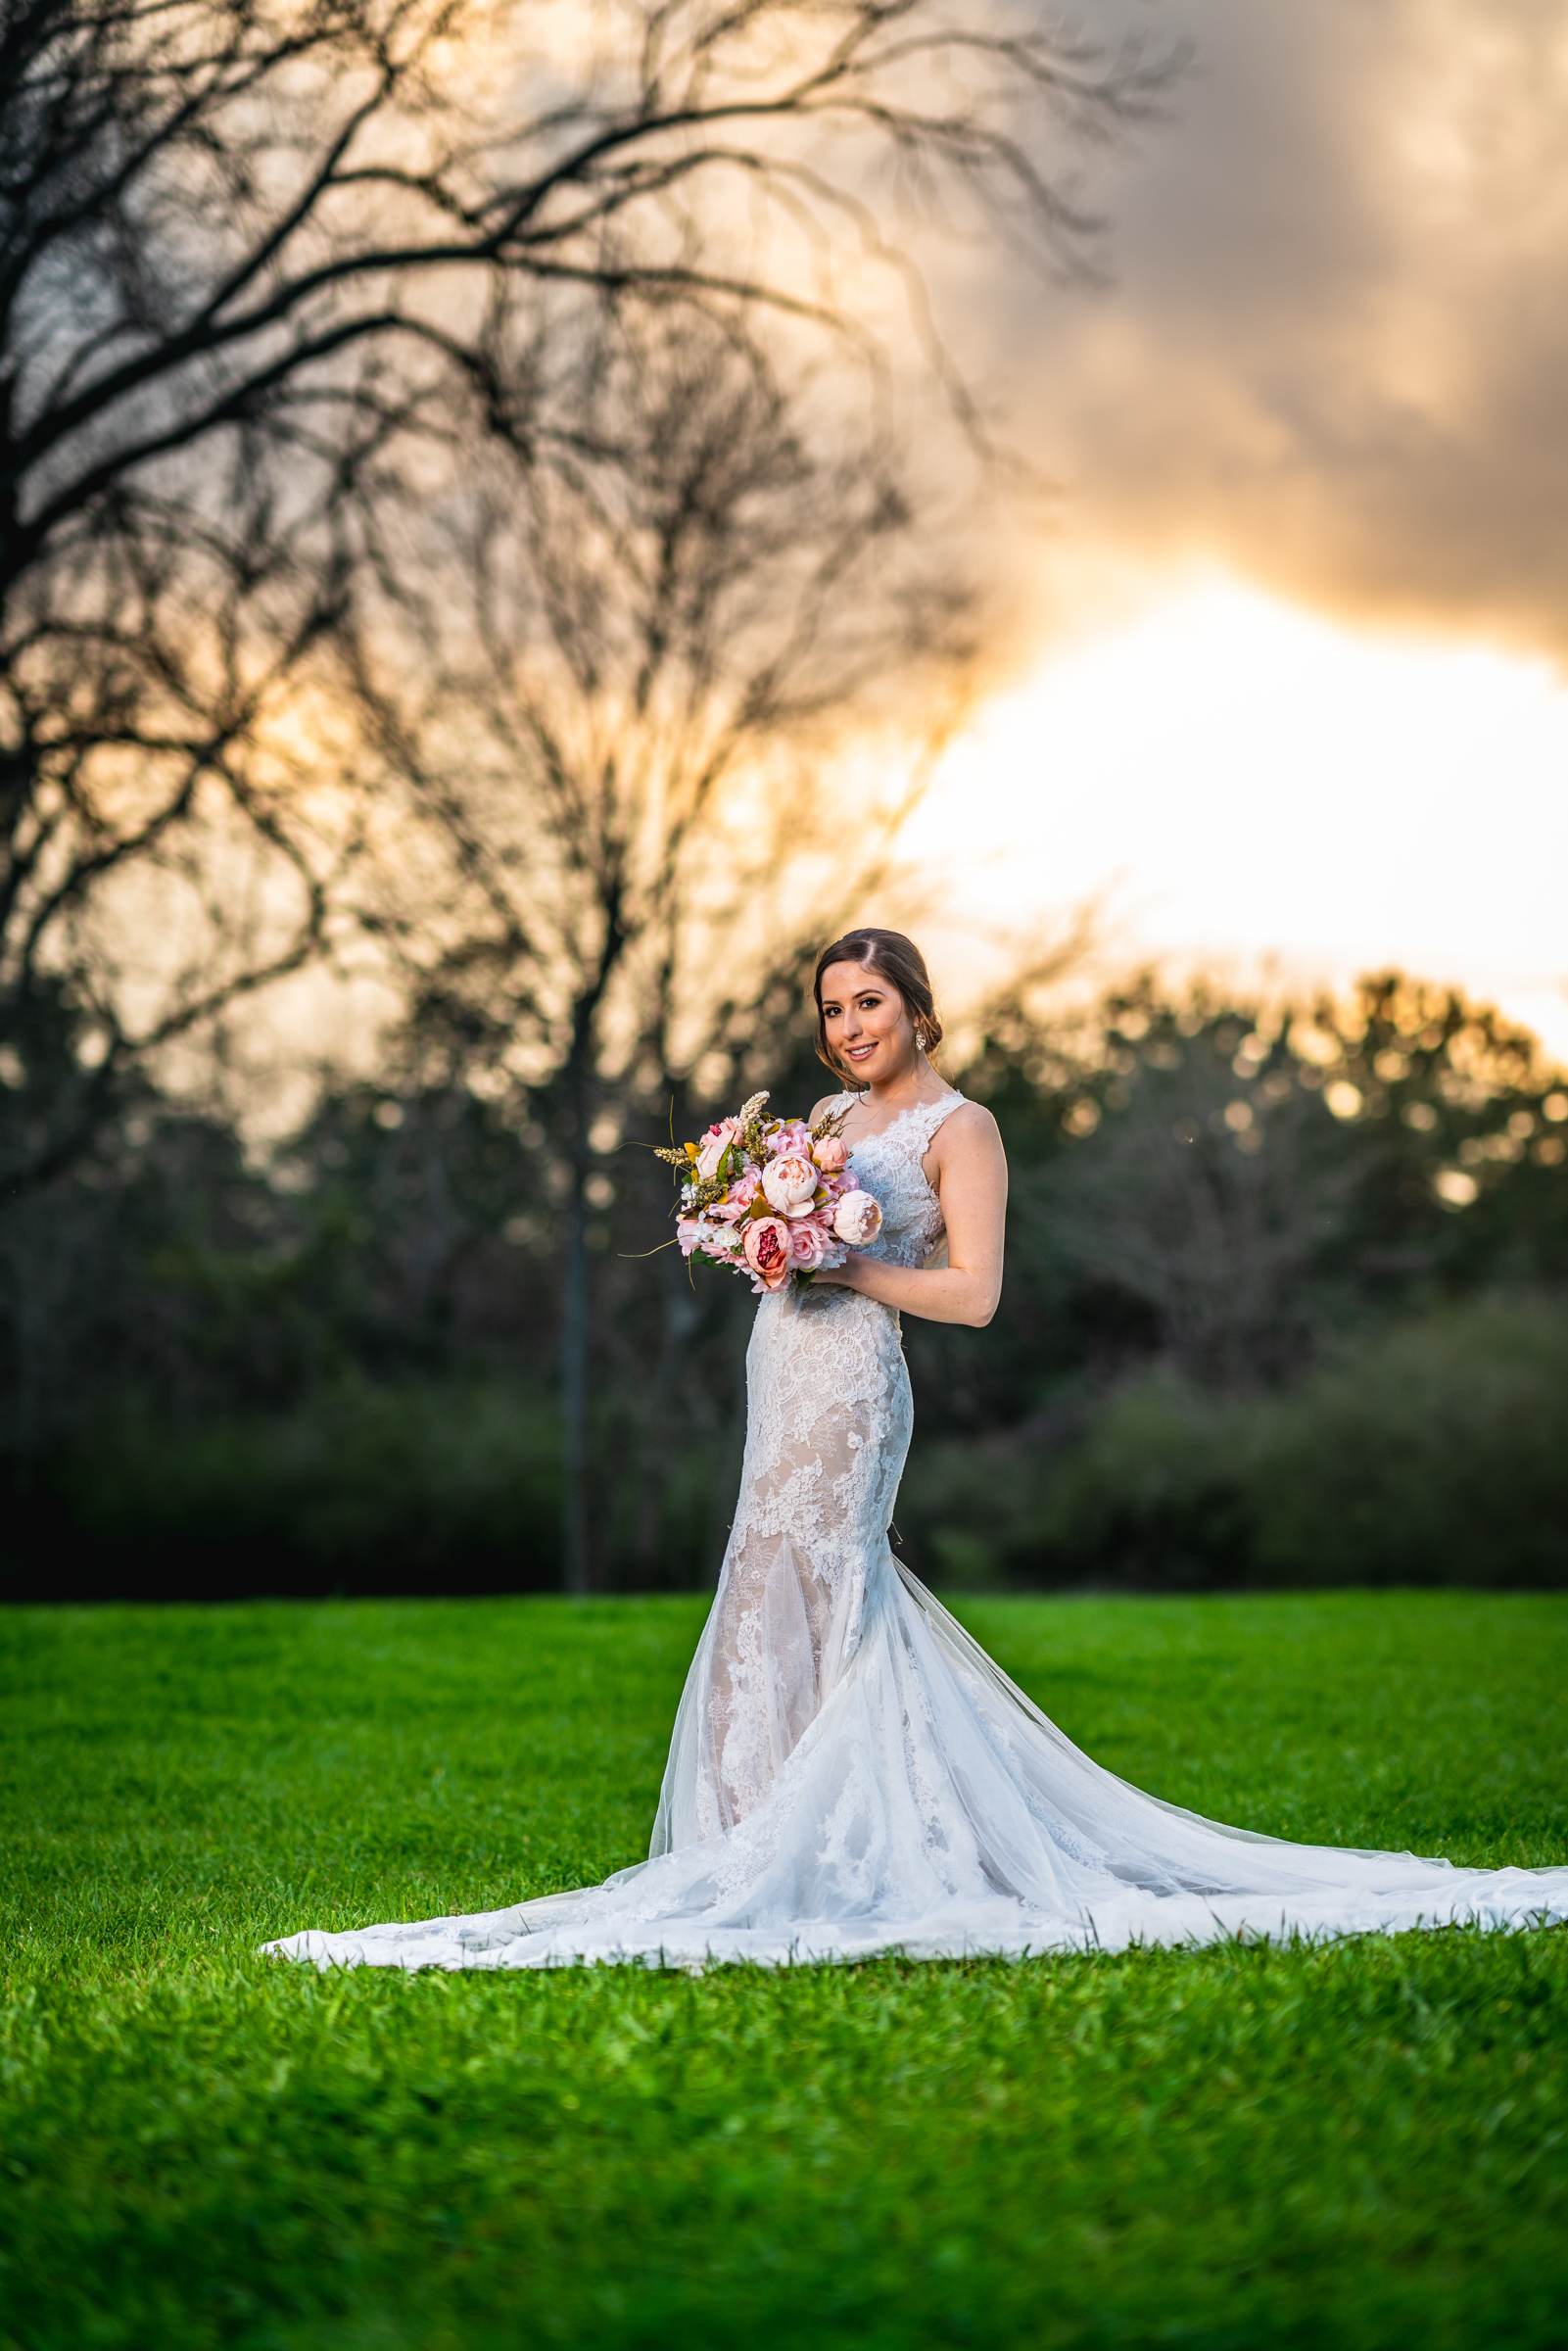 Bridal-Pensacola-wedding-venue.jpg